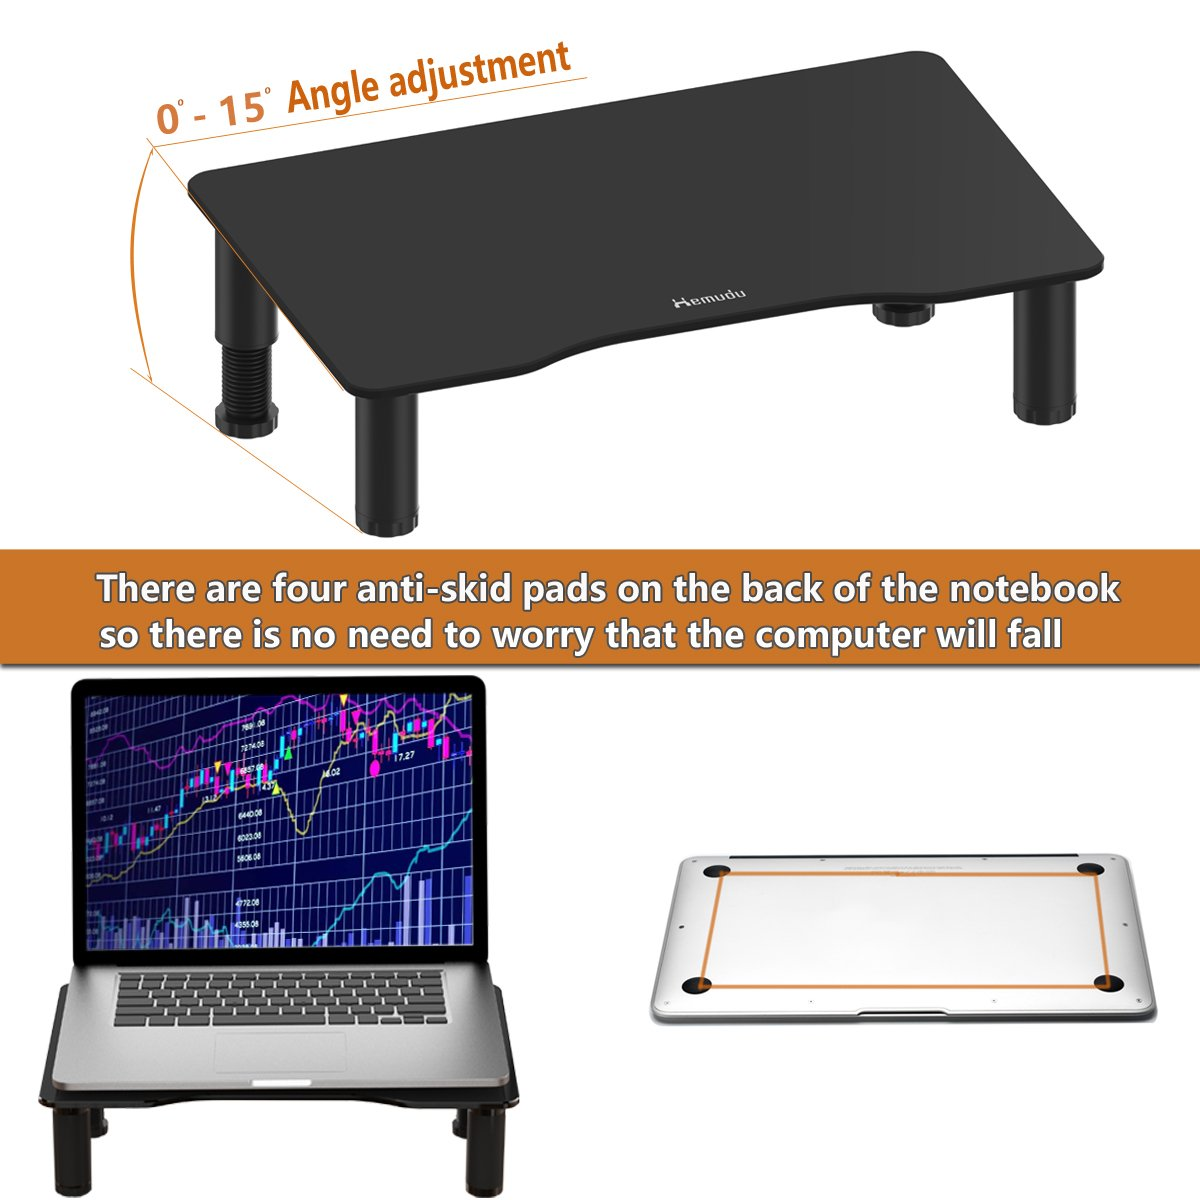 Glass Computer Monitor Stand Riser with Height Adjustable Multi Media Desktop Stand for Flat Screen LCD LED TV, Laptop/Notebook/Xbox One, Black HD01B-002 by Hemudu (Image #5)